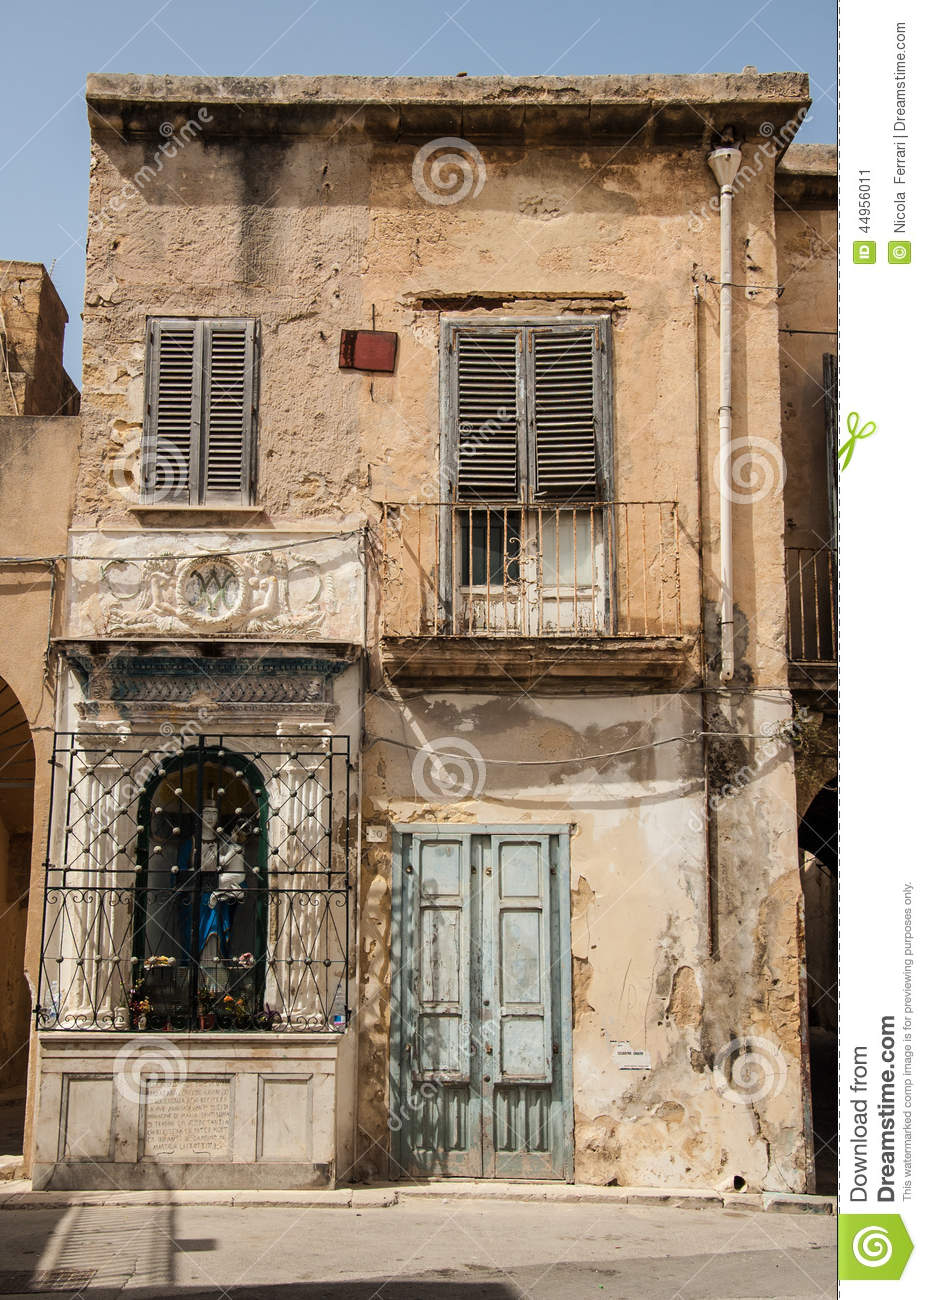 Decrepit Old House With A Small Shrine In The Front Stock Image